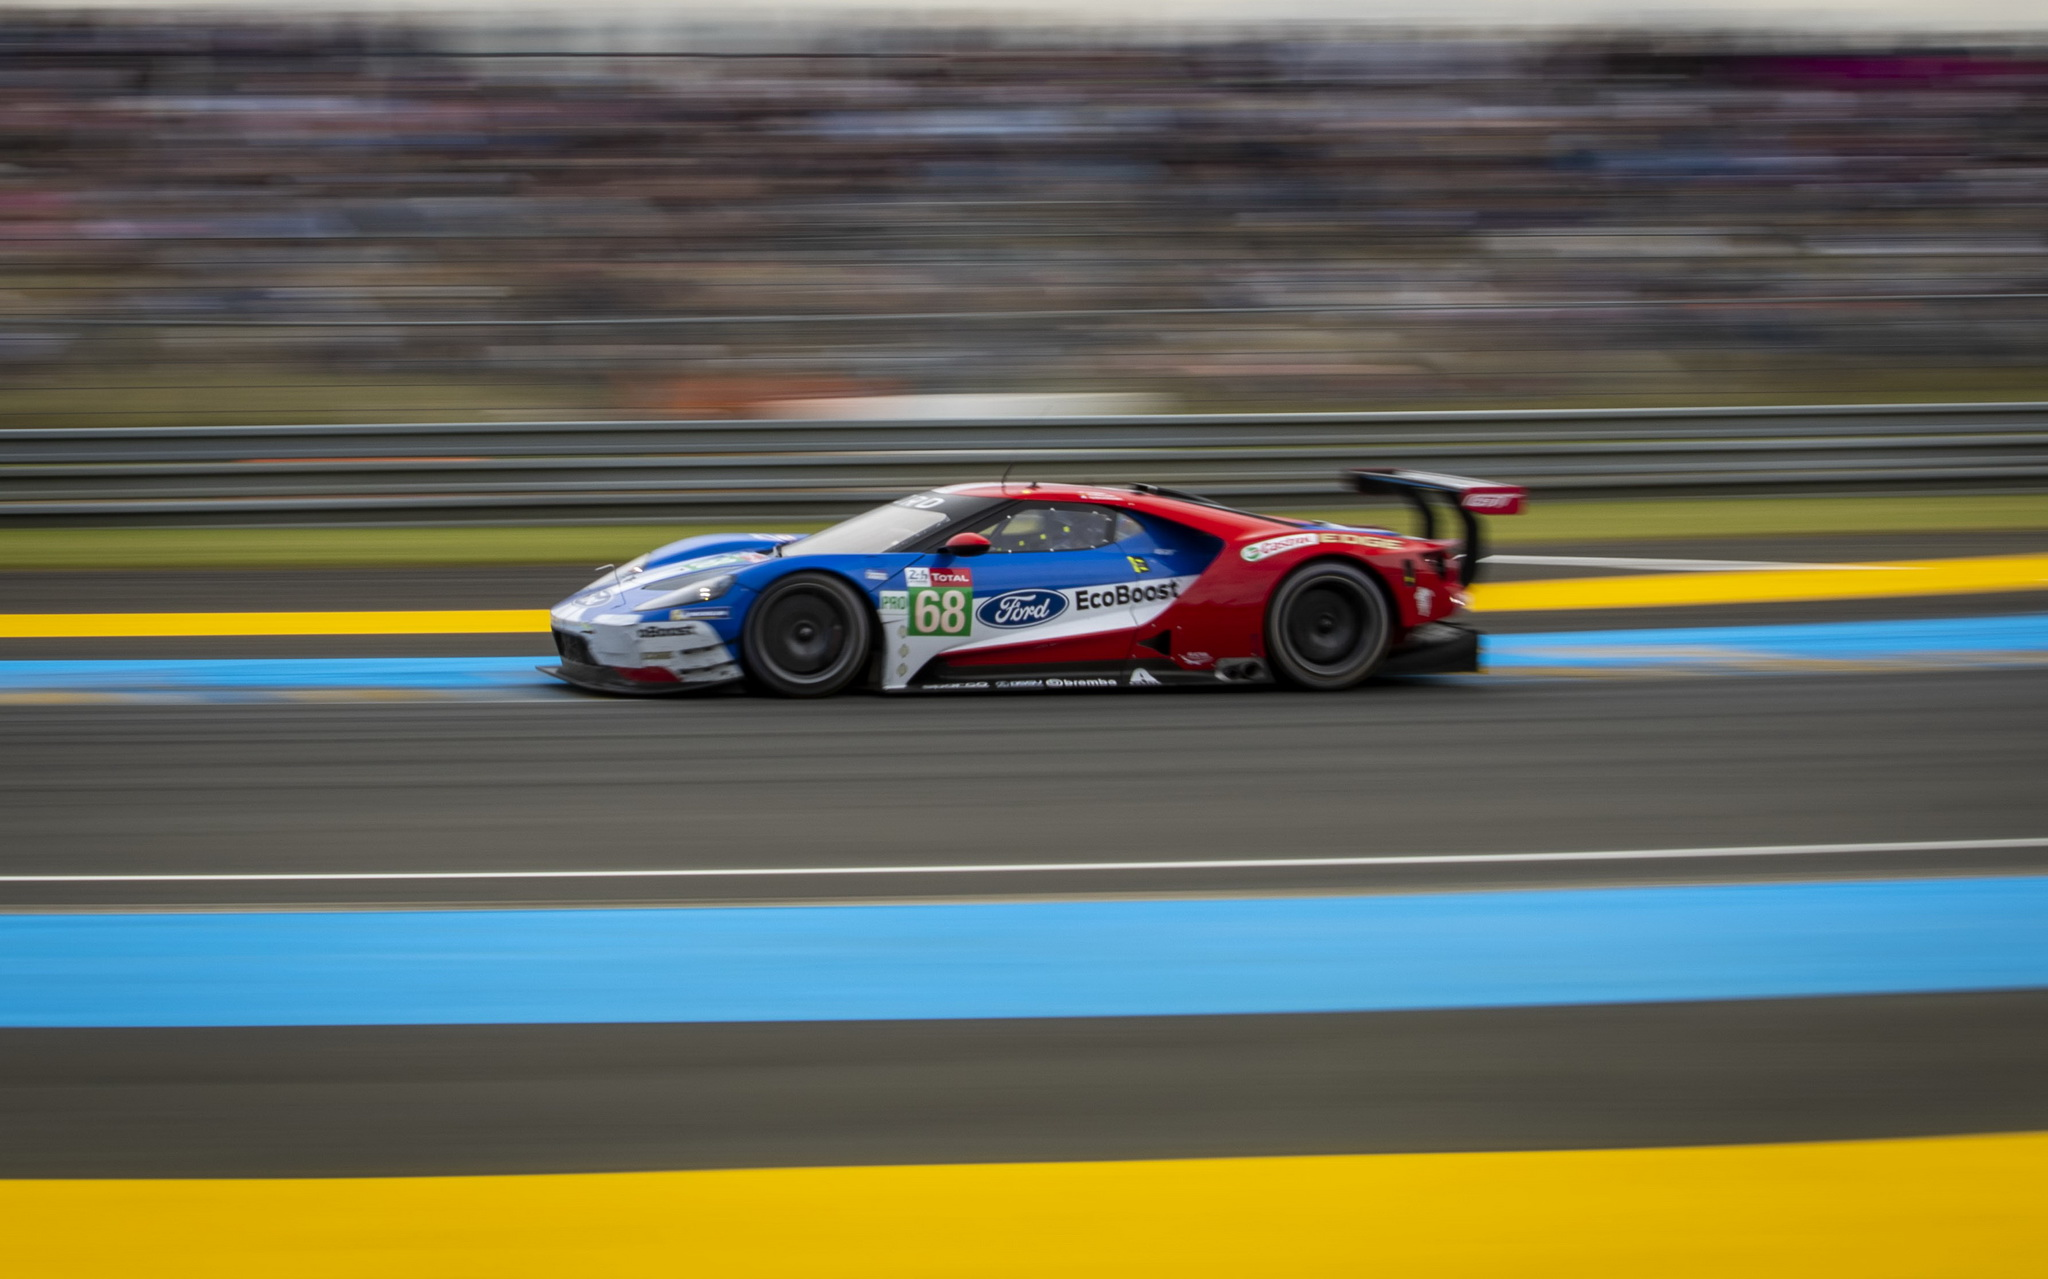 Ford Chip Ganassi Racing Fights To Fourth Through Seventh Place Finishes in GTE Pro; Helps Keating Motorsports To Le Mans Victory in GTE Am